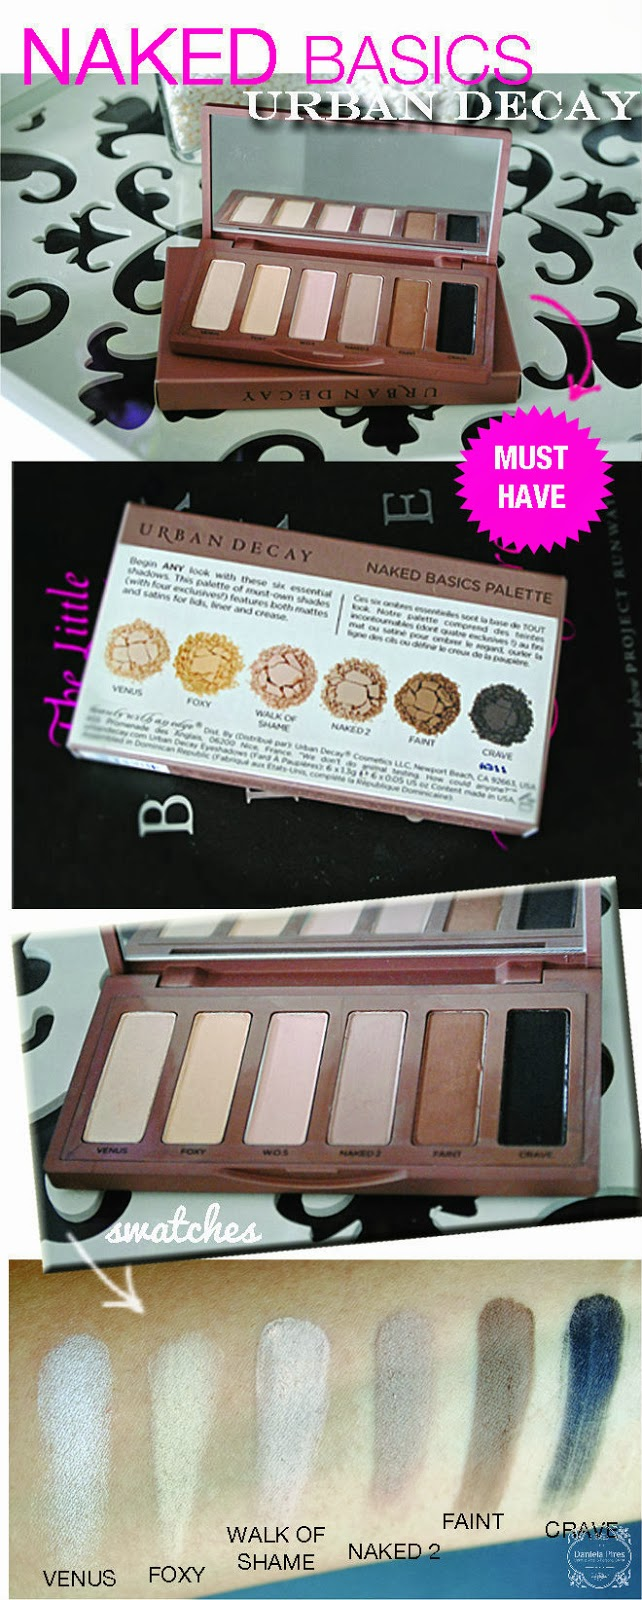 urban decay, naked basics, review, daniela pires, blogger, maquilhadora profissional, paleta de sombras, basic eyeshadows, must have